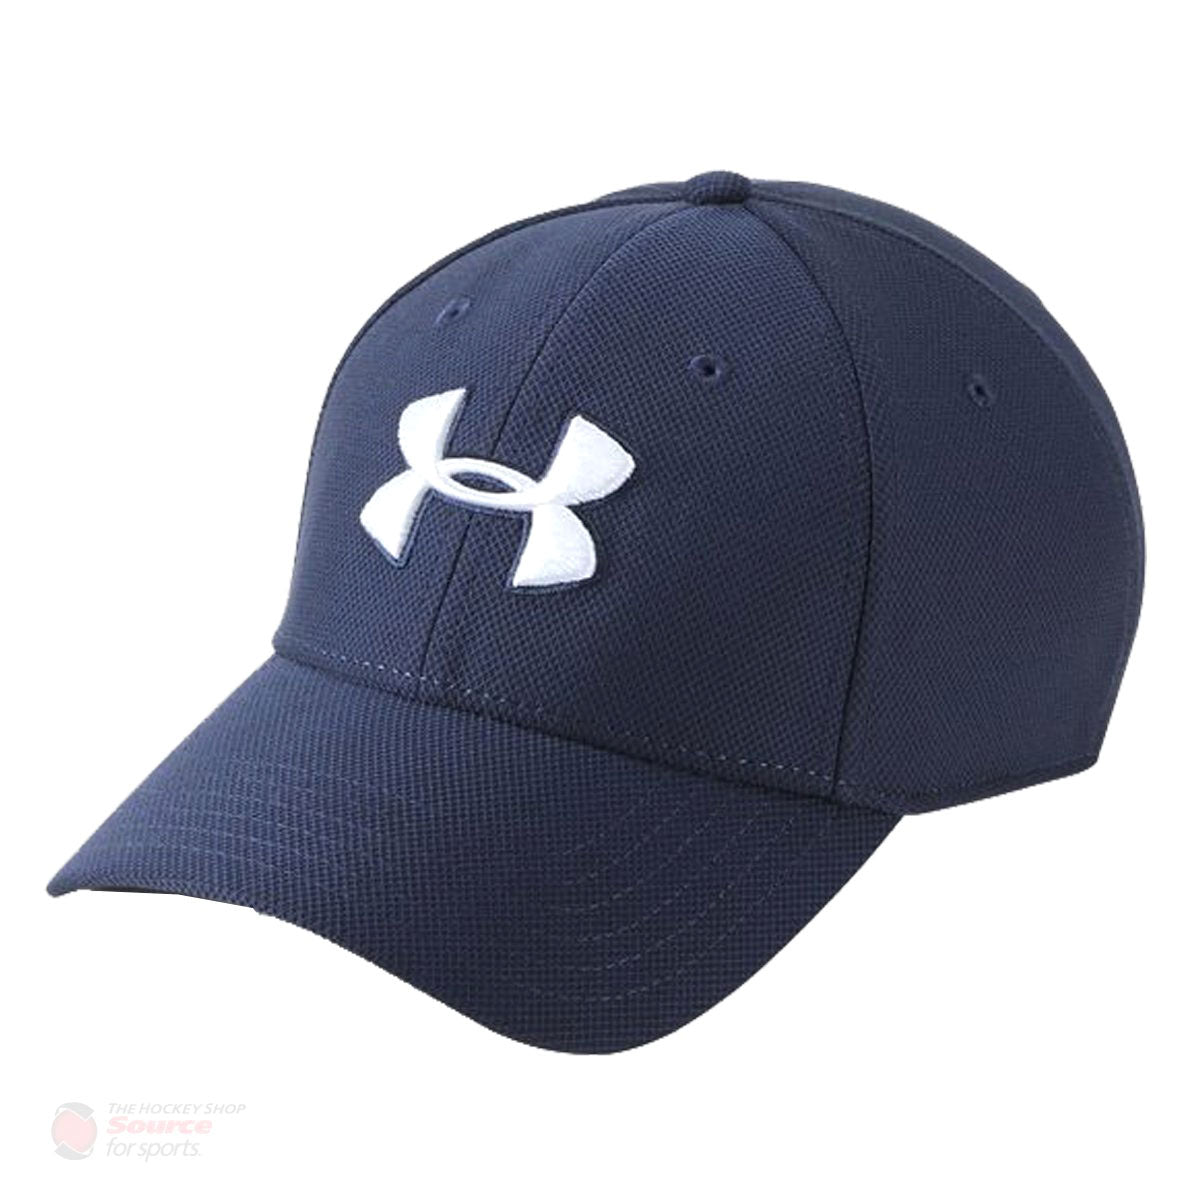 Under Armour Blitzing 3.0 Hat